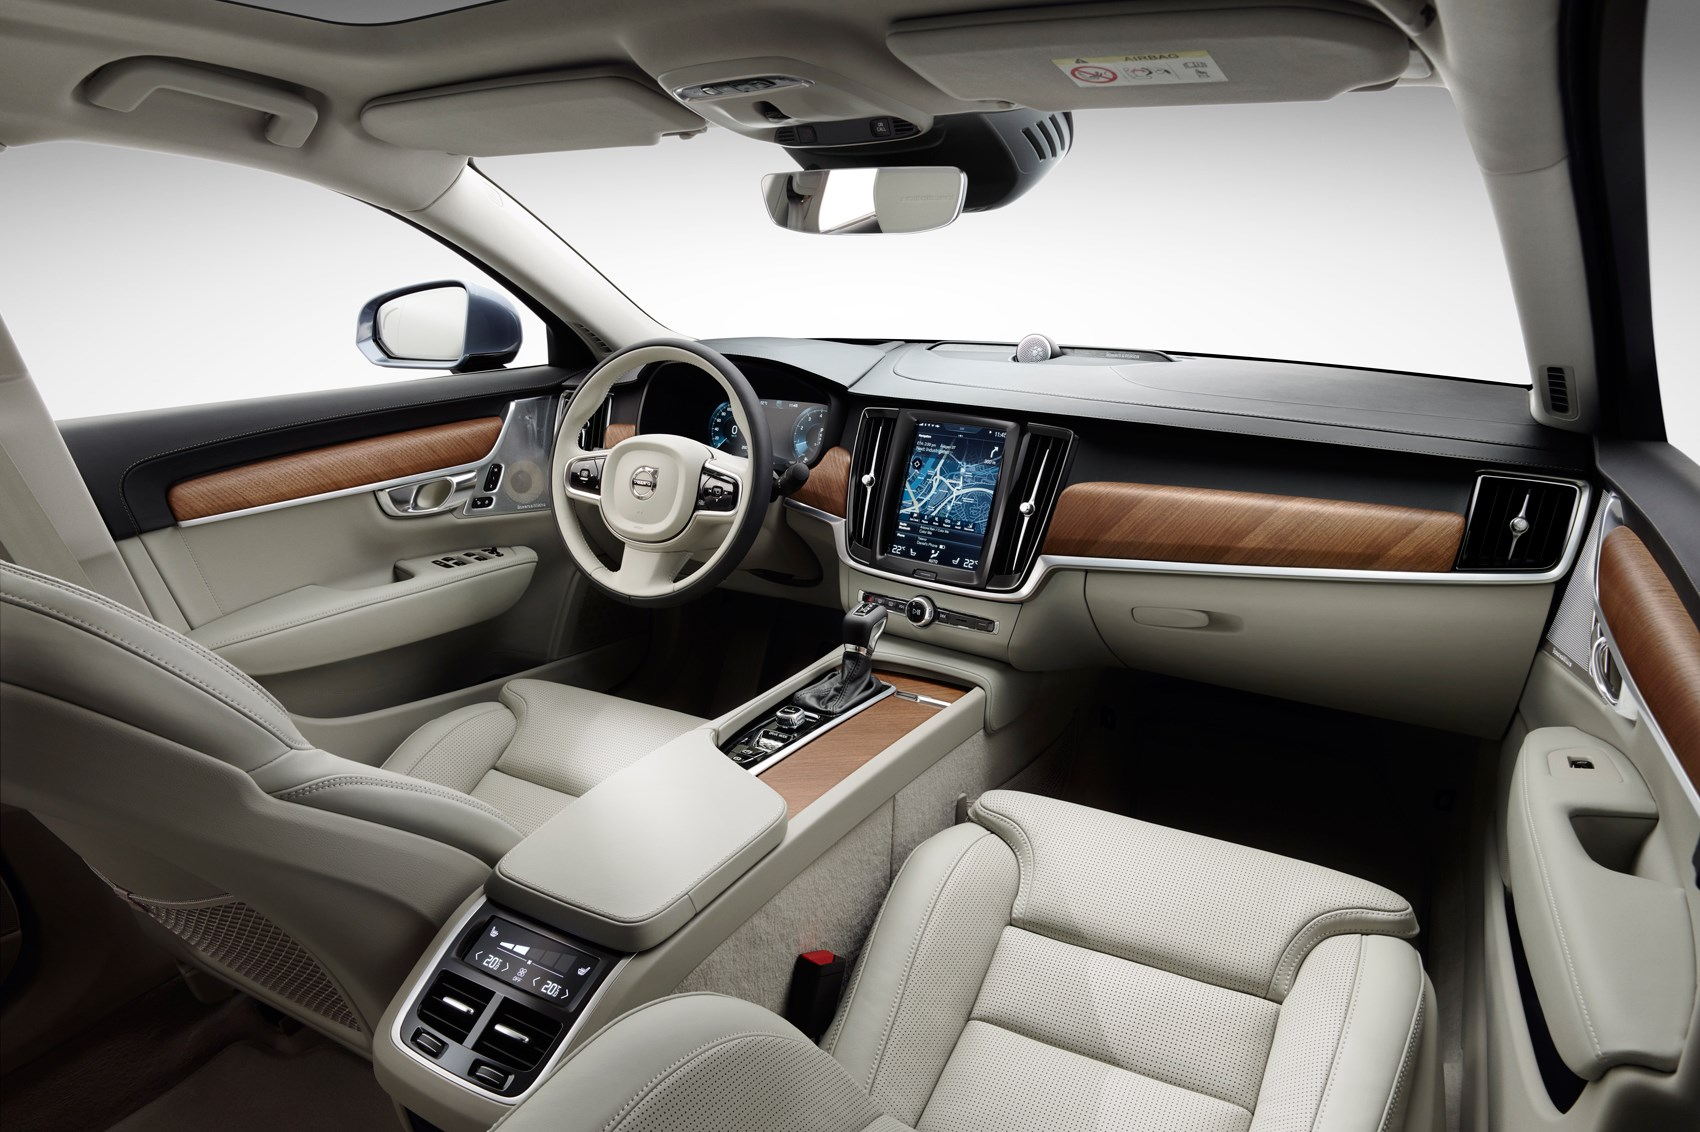 stunning-design-of-the-white-seats-added-with-brown-accents-volvo-v90-2016-interior-ideas